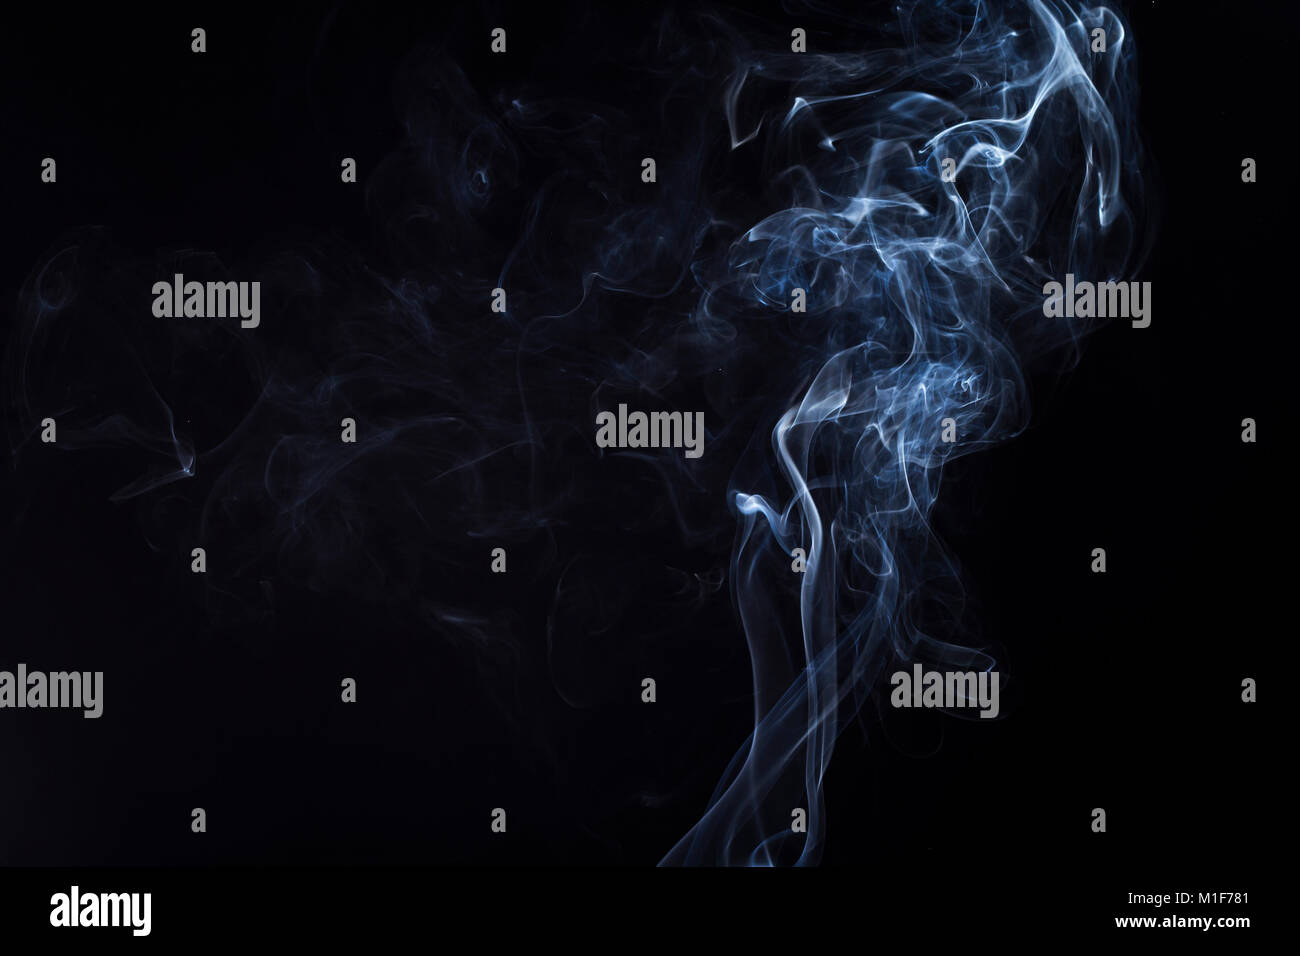 Swirly cloud of smoke on black background, used for design and as various graphic resource - Stock Image